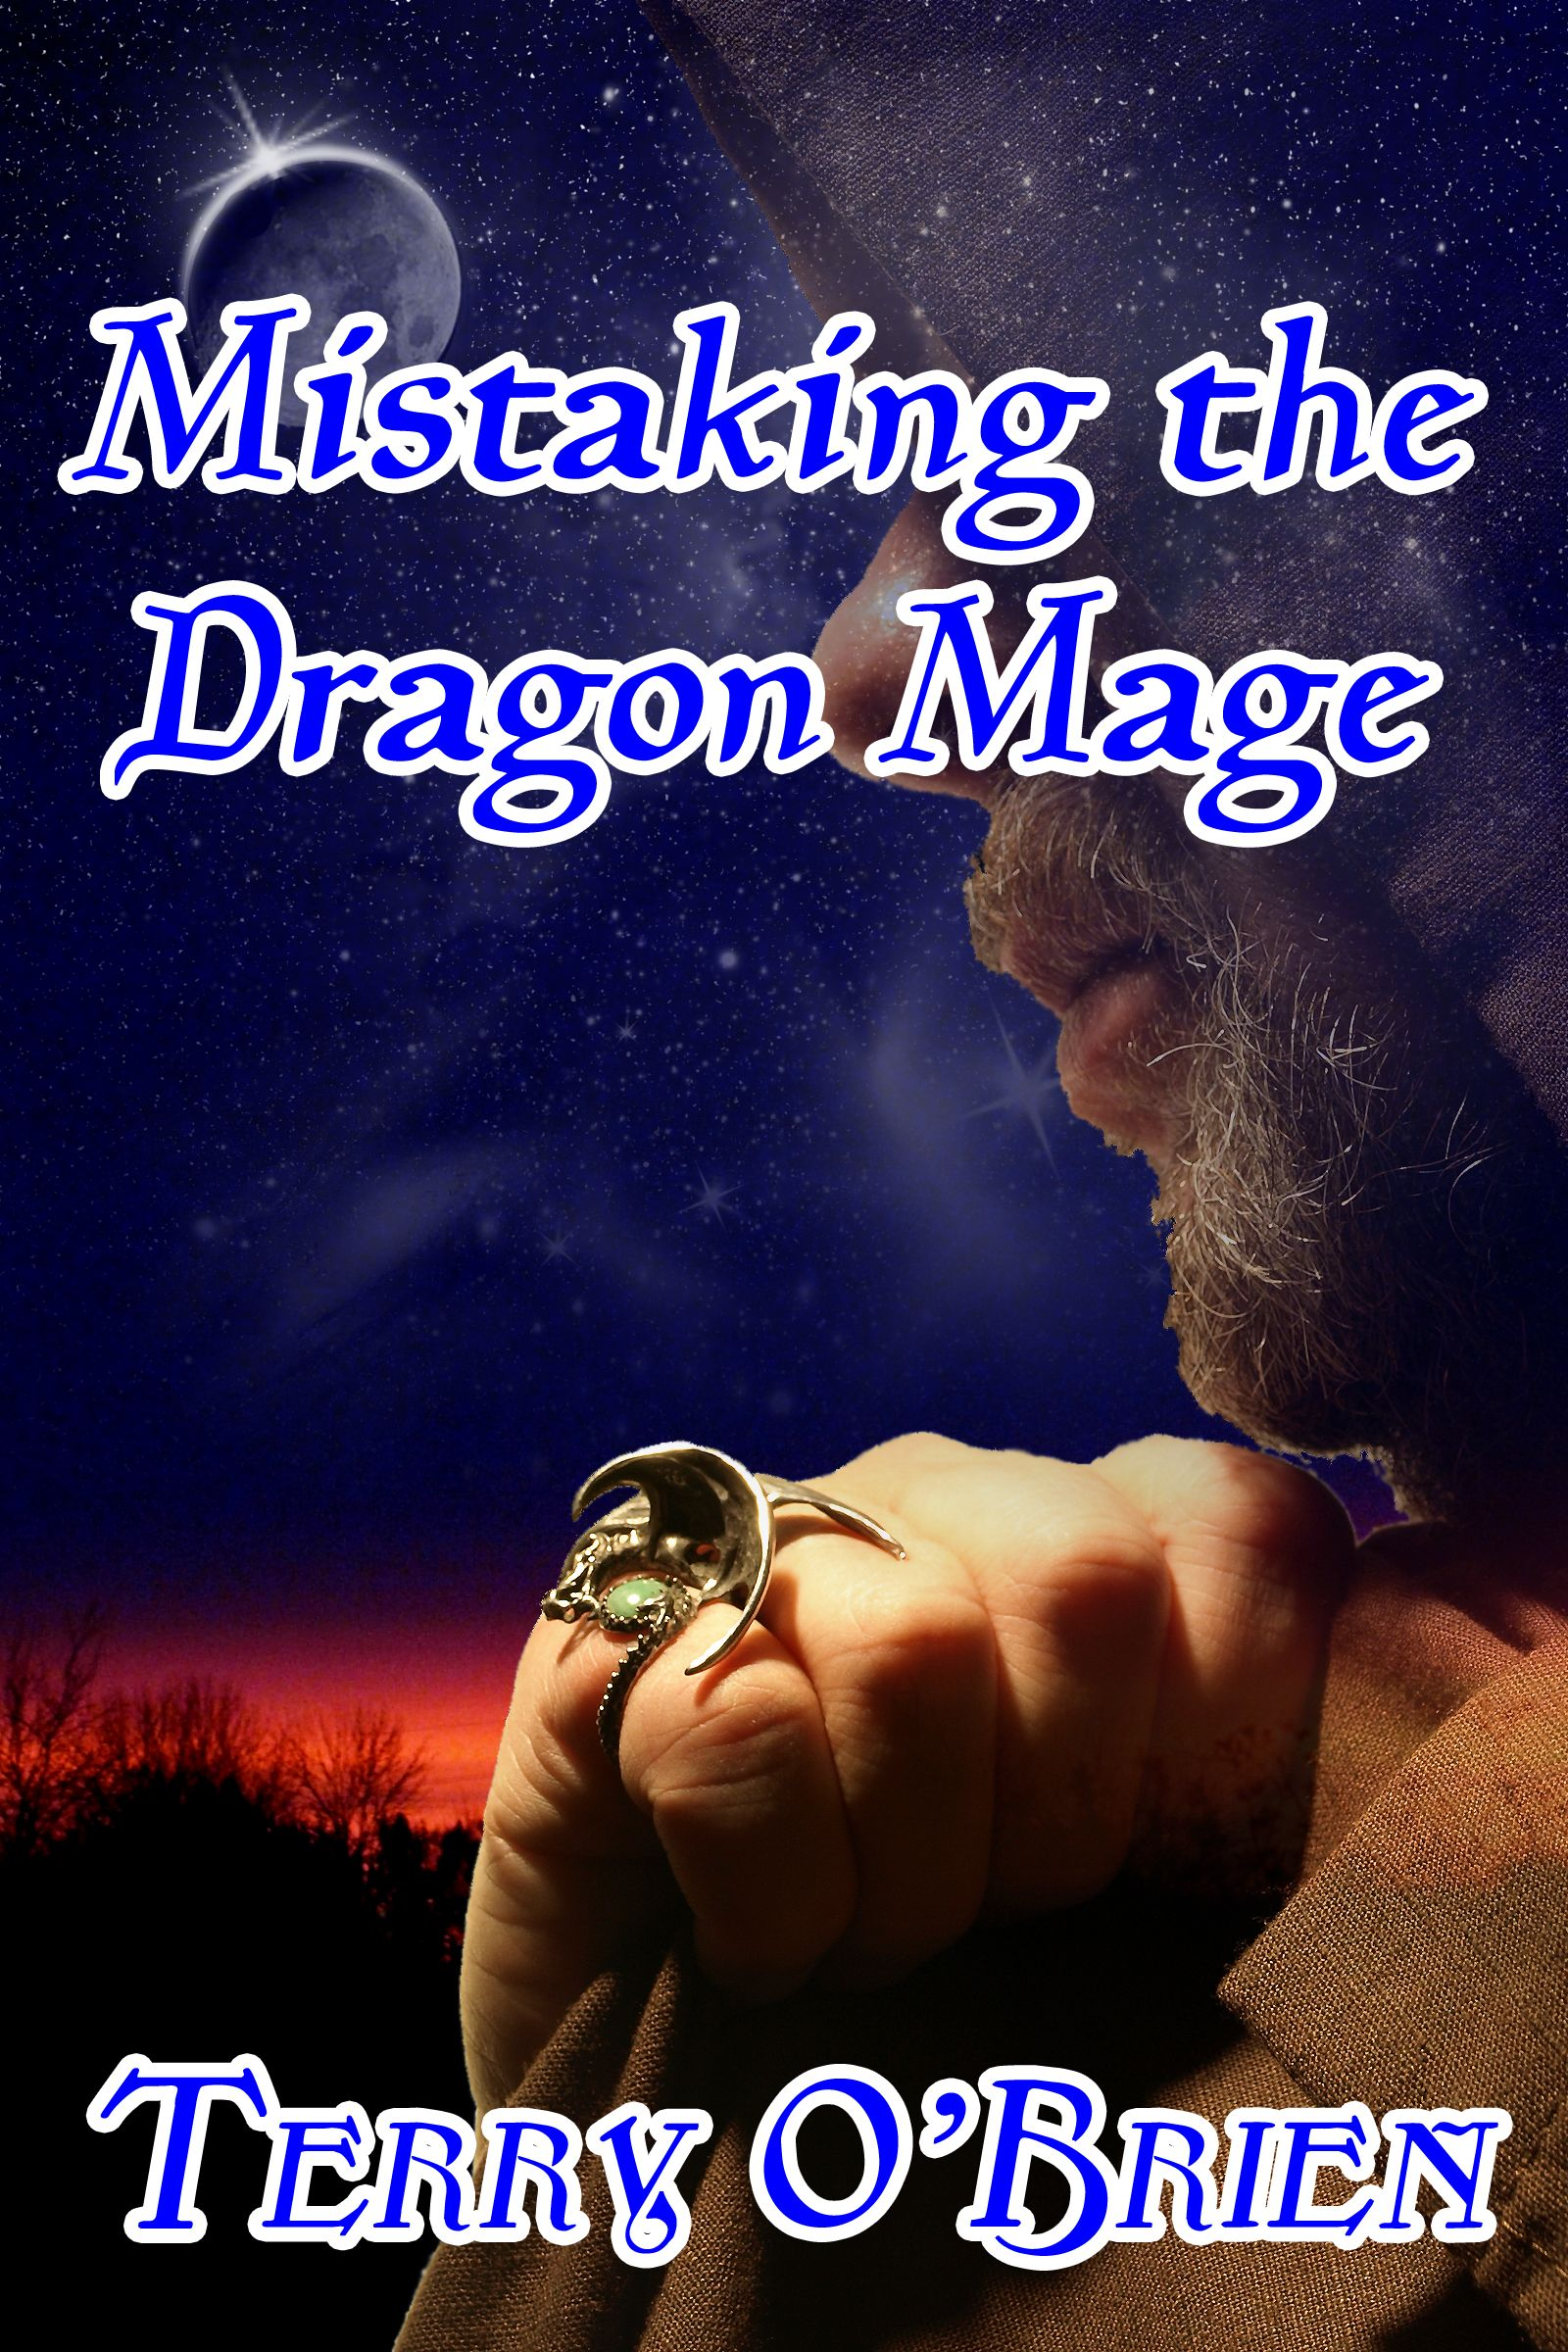 Mistaking the Dragon Mage